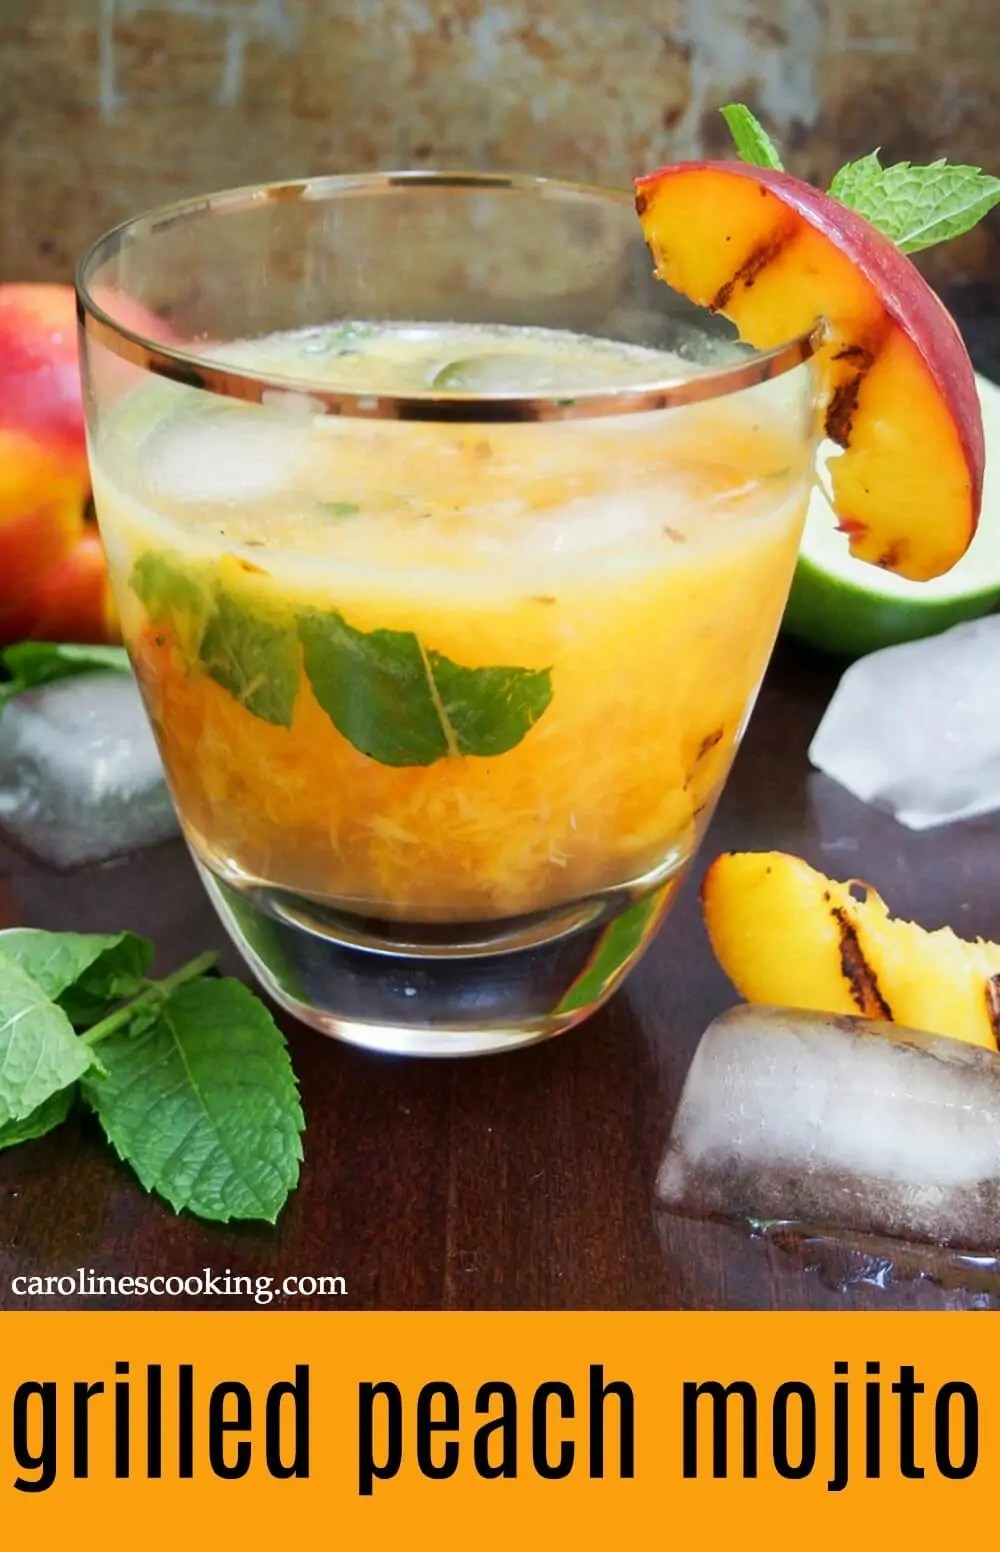 This grilled peach mojito is a deliciously fruity twist on the classic cocktail. Easy to make, it's full of fresh summery flavors. Recipe includes a few adaptations including as a mocktail or frozen. #mojito #peach #cocktail